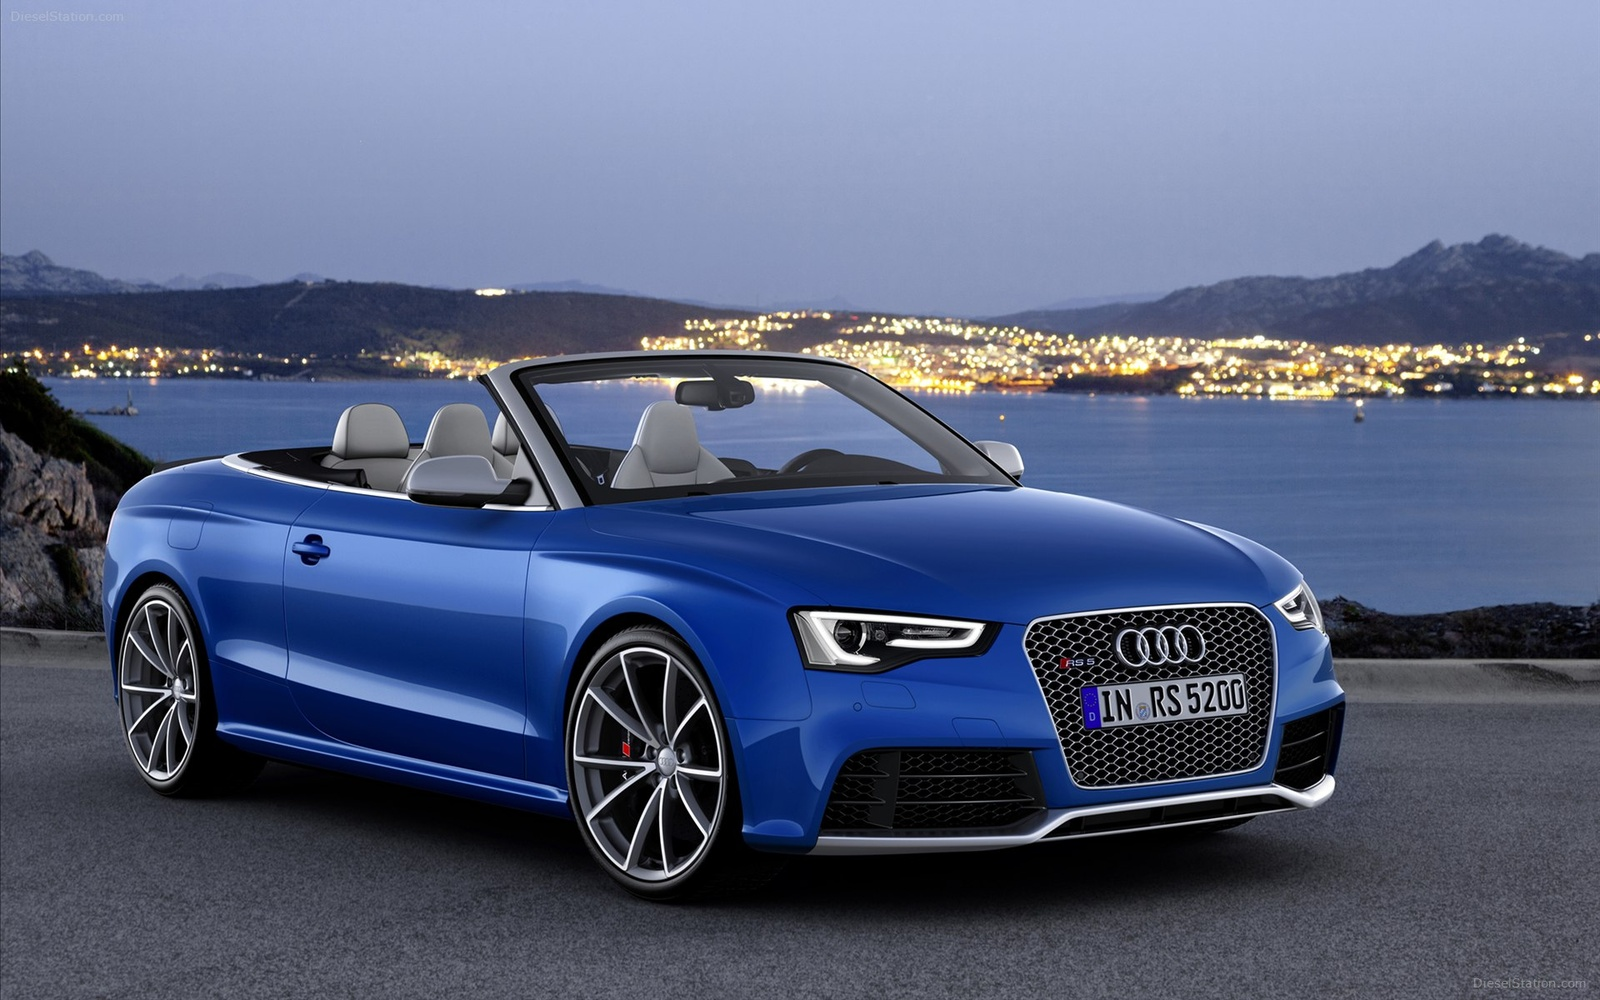 Audi S Questions Audi Recommends Using Octane Gas But Requires - Audi 87